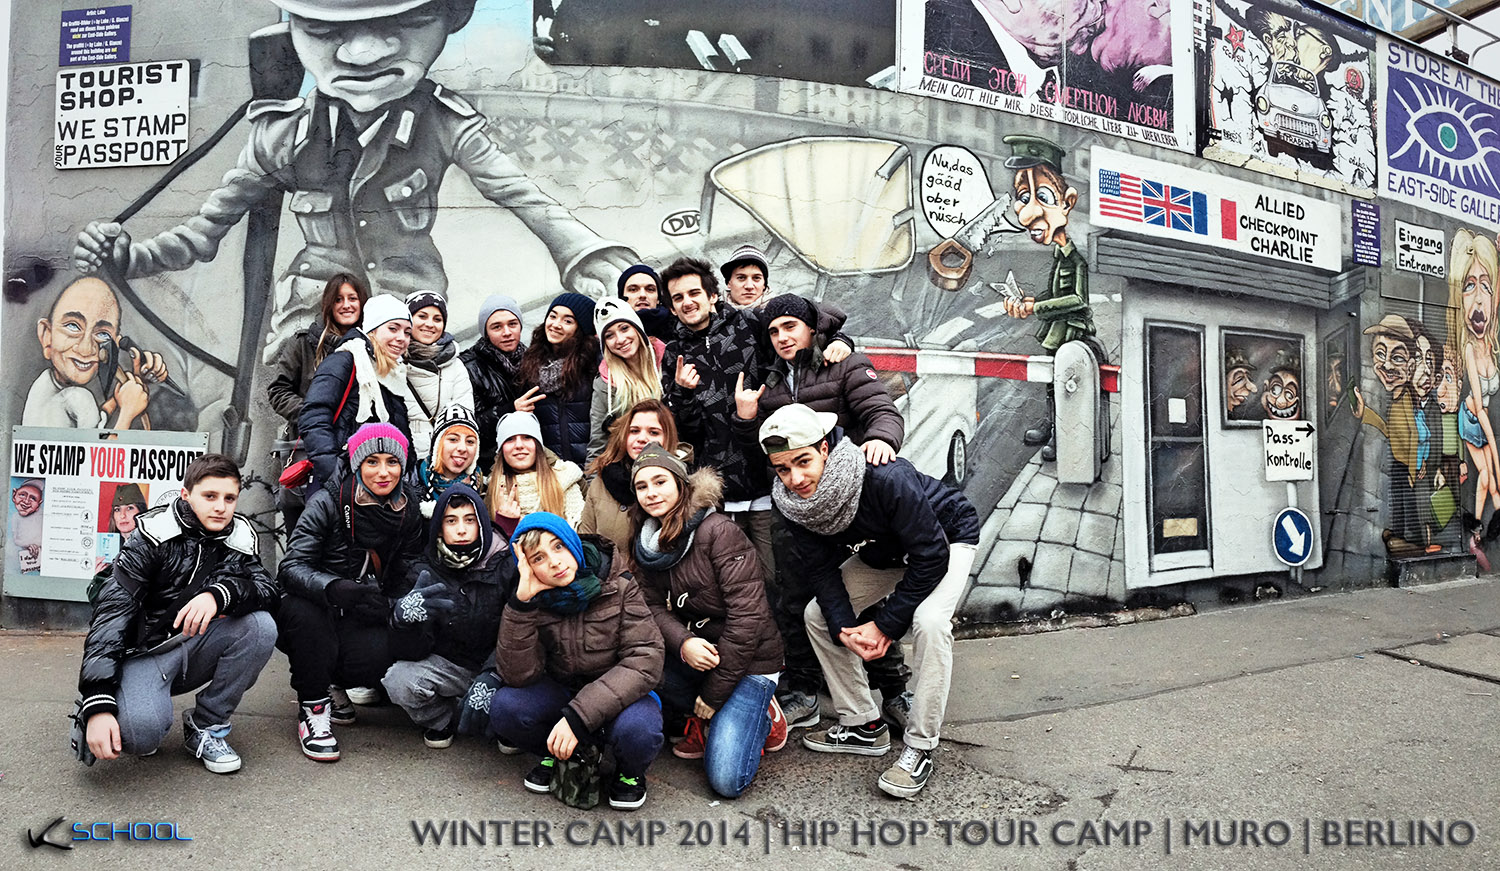 MURO DI BERLINO | HIP HOP TOUR WINTER CAMP 2014